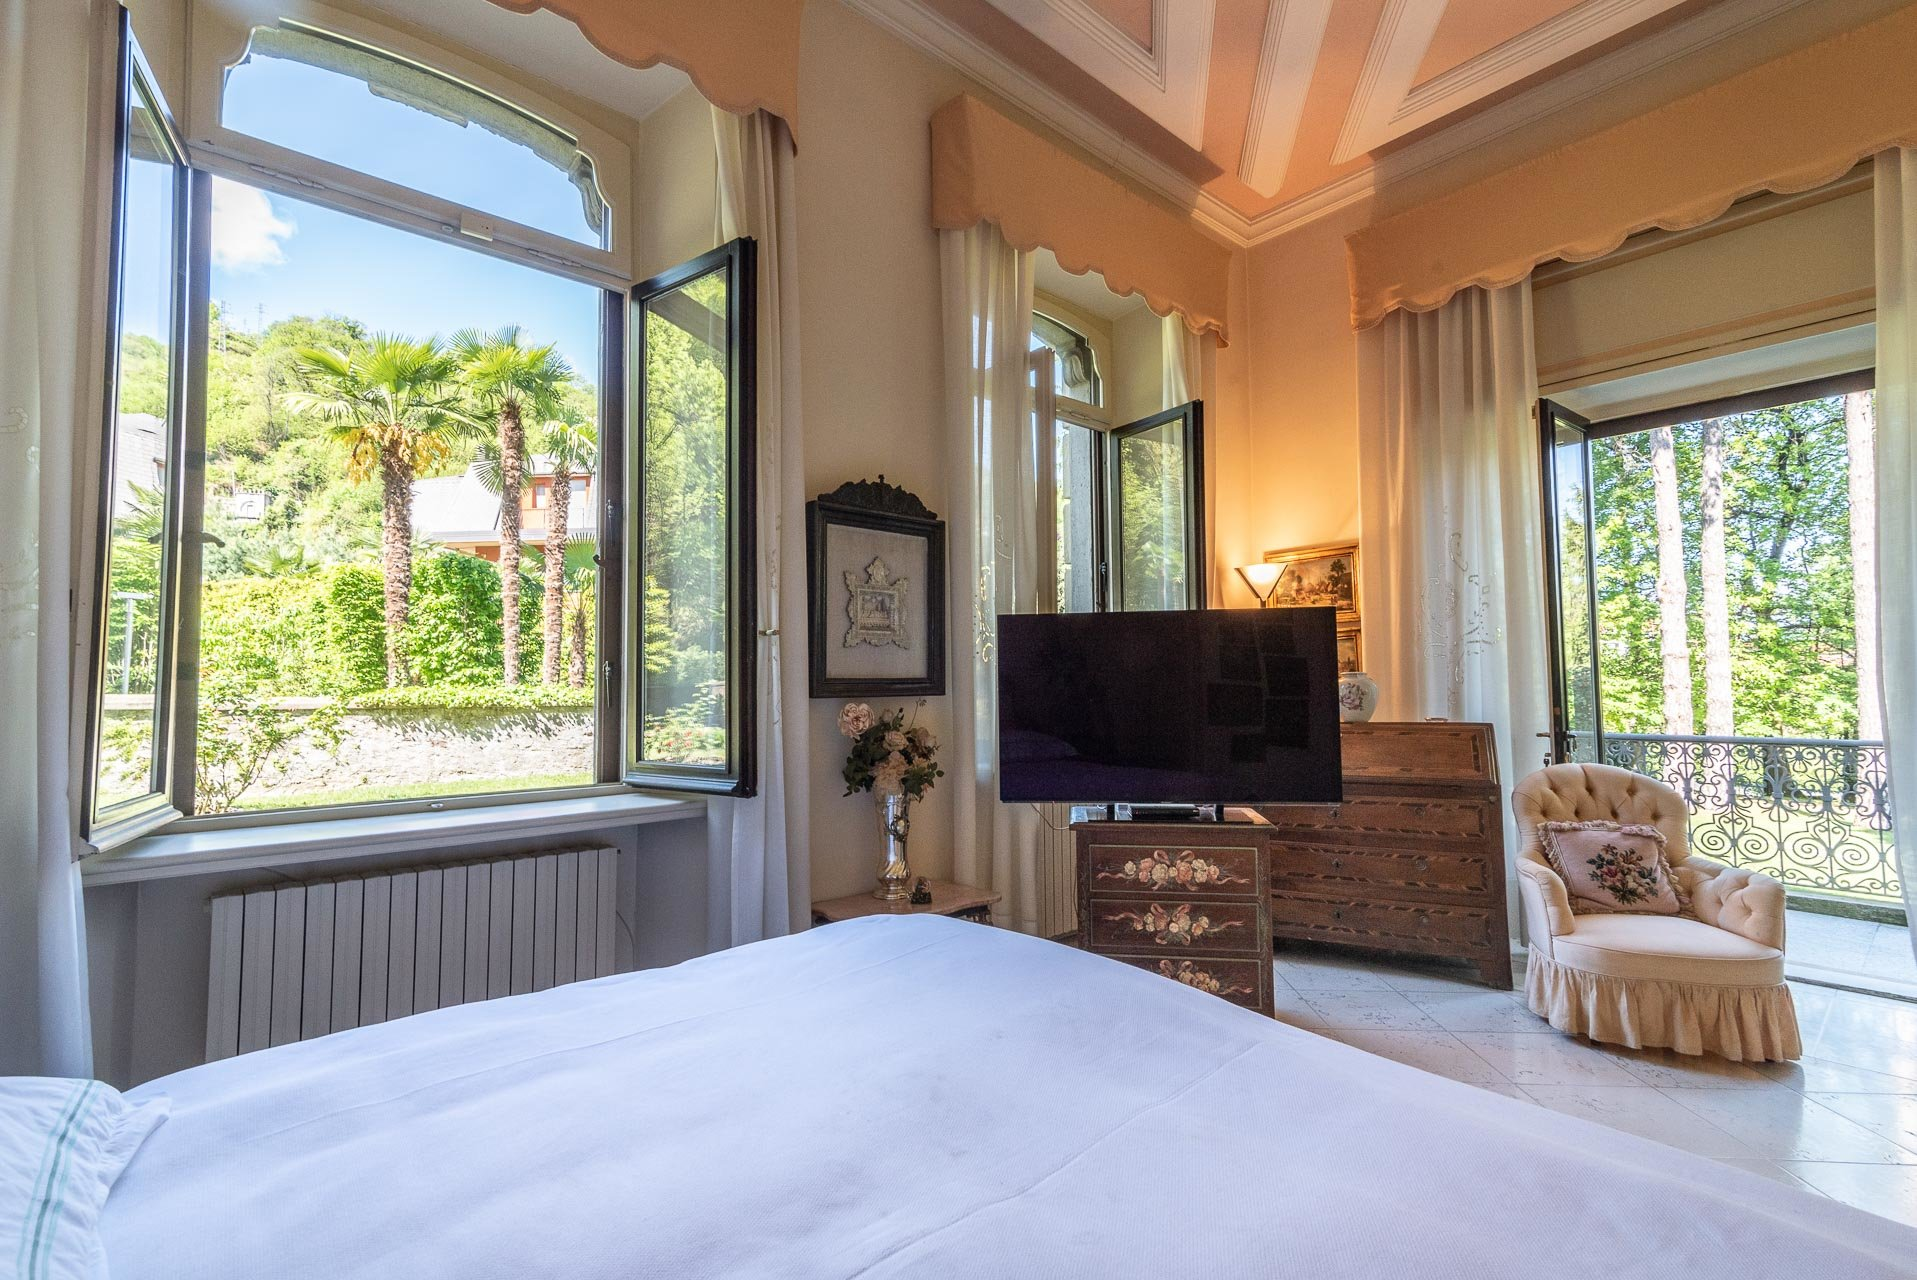 Luxurious apartment for sale in a villa in Stresa - master bedroom